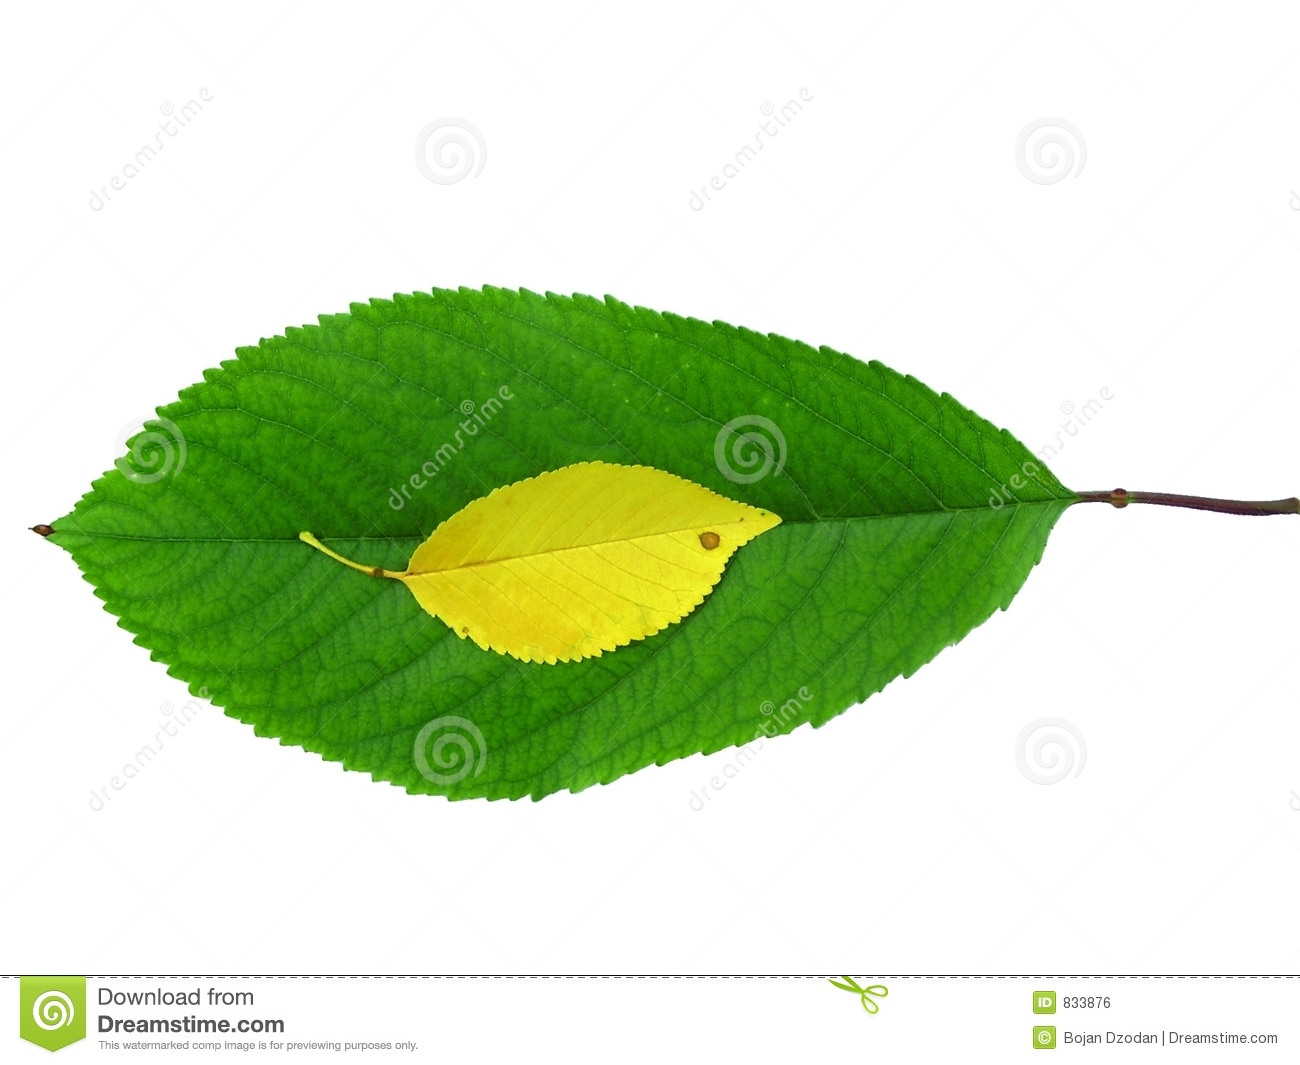 Large and small leafs